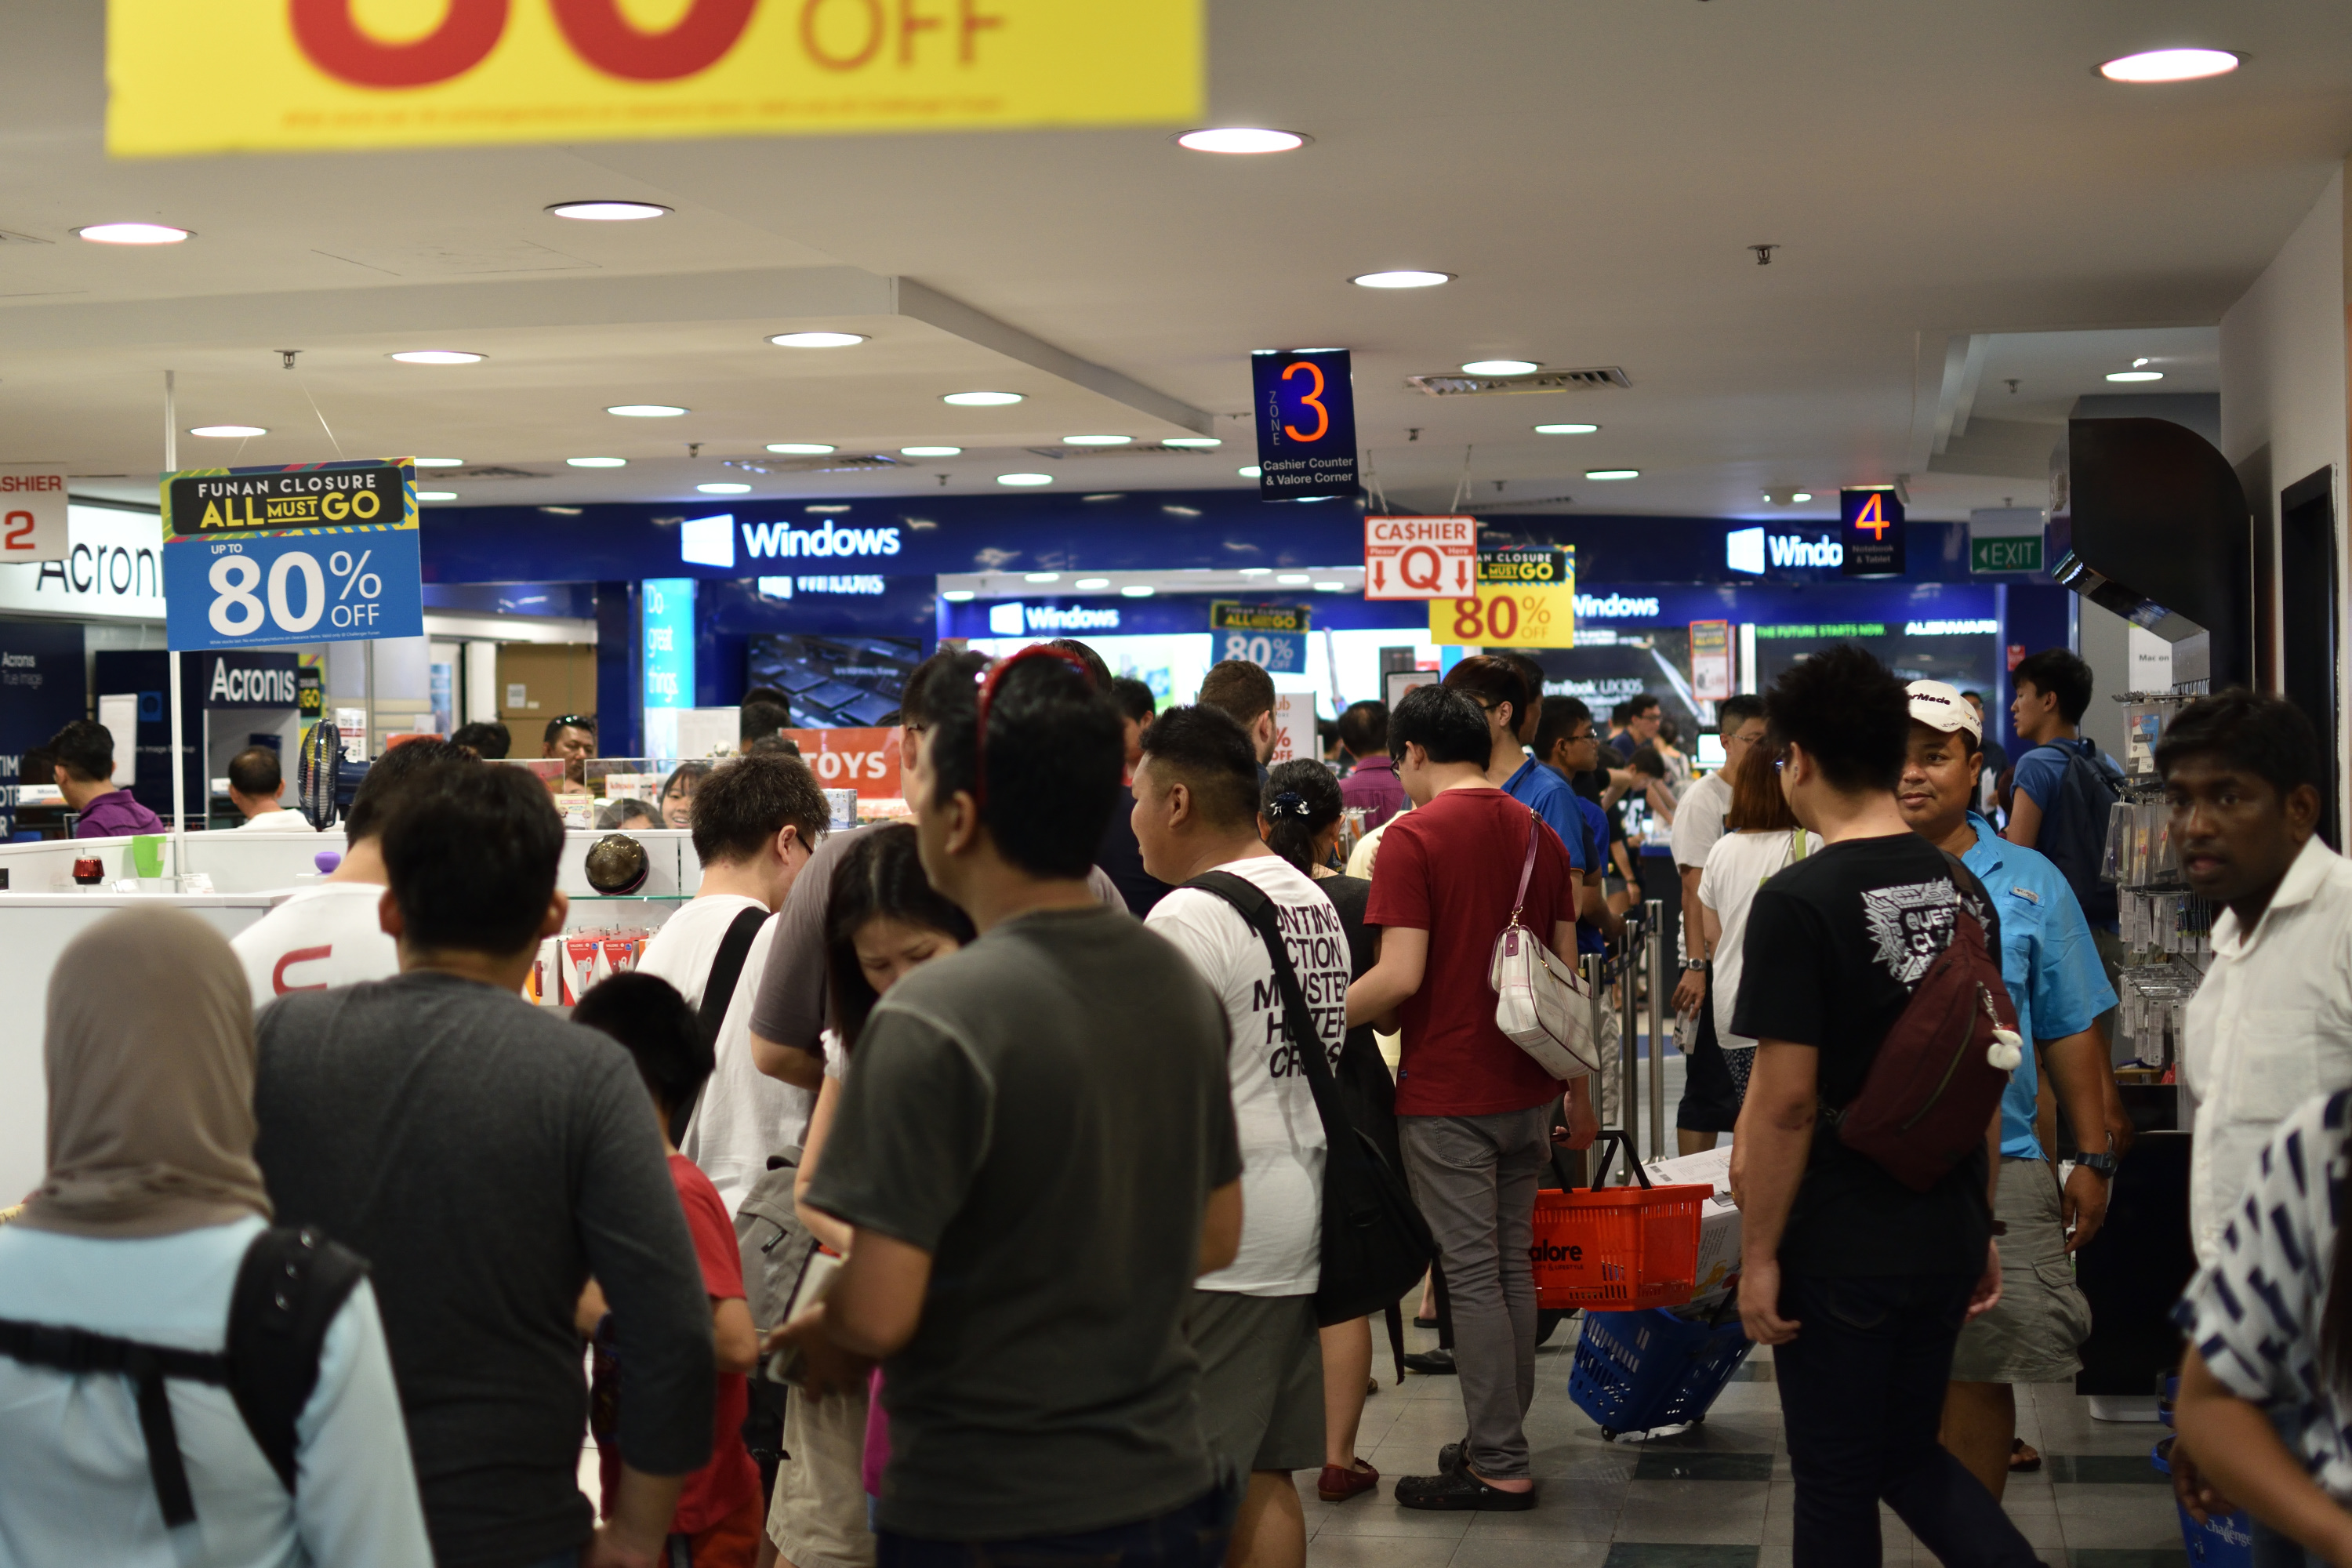 A long queue at the checkout counters.